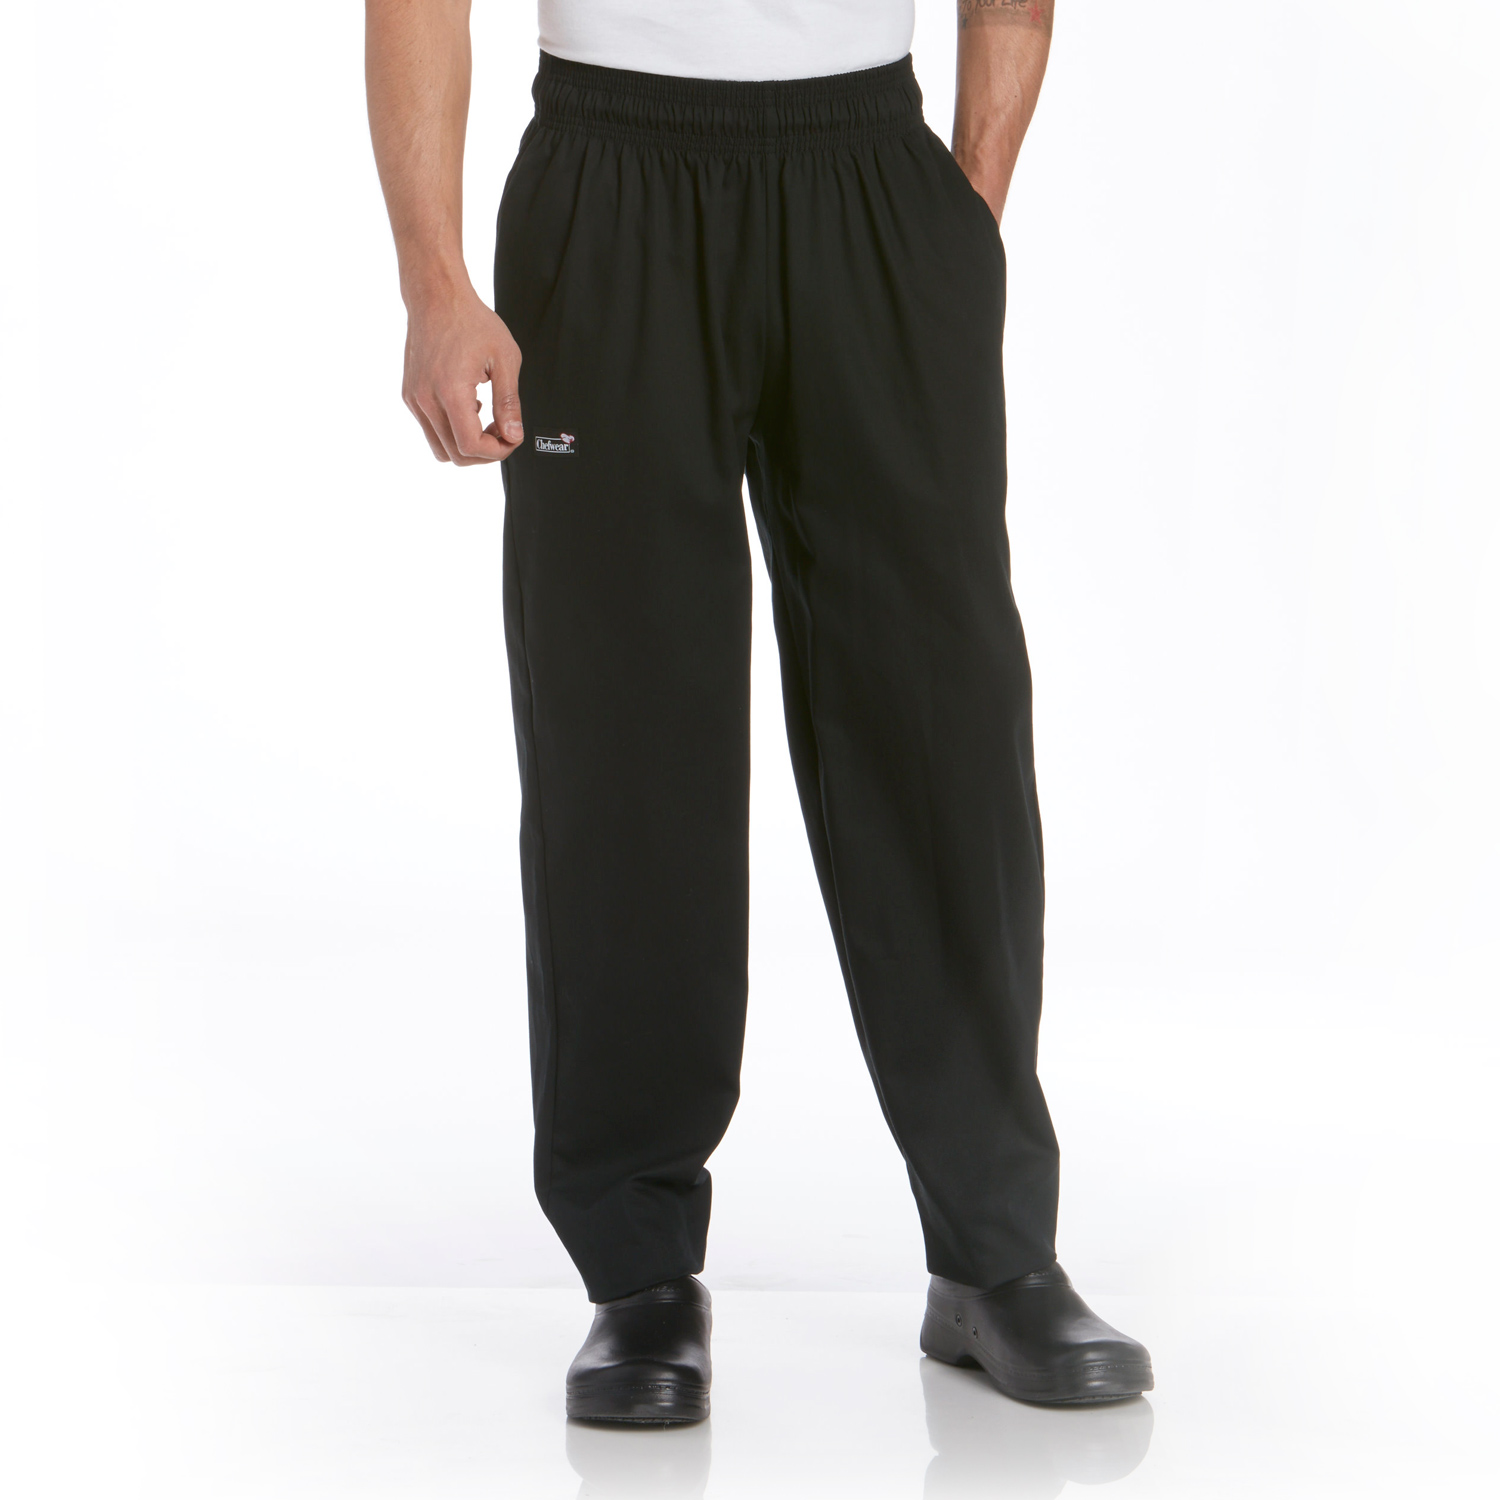 8392f94b1 Buy Shop Chef Pants – Chefwear Online in CO – Nu-Crisp Image Apparel